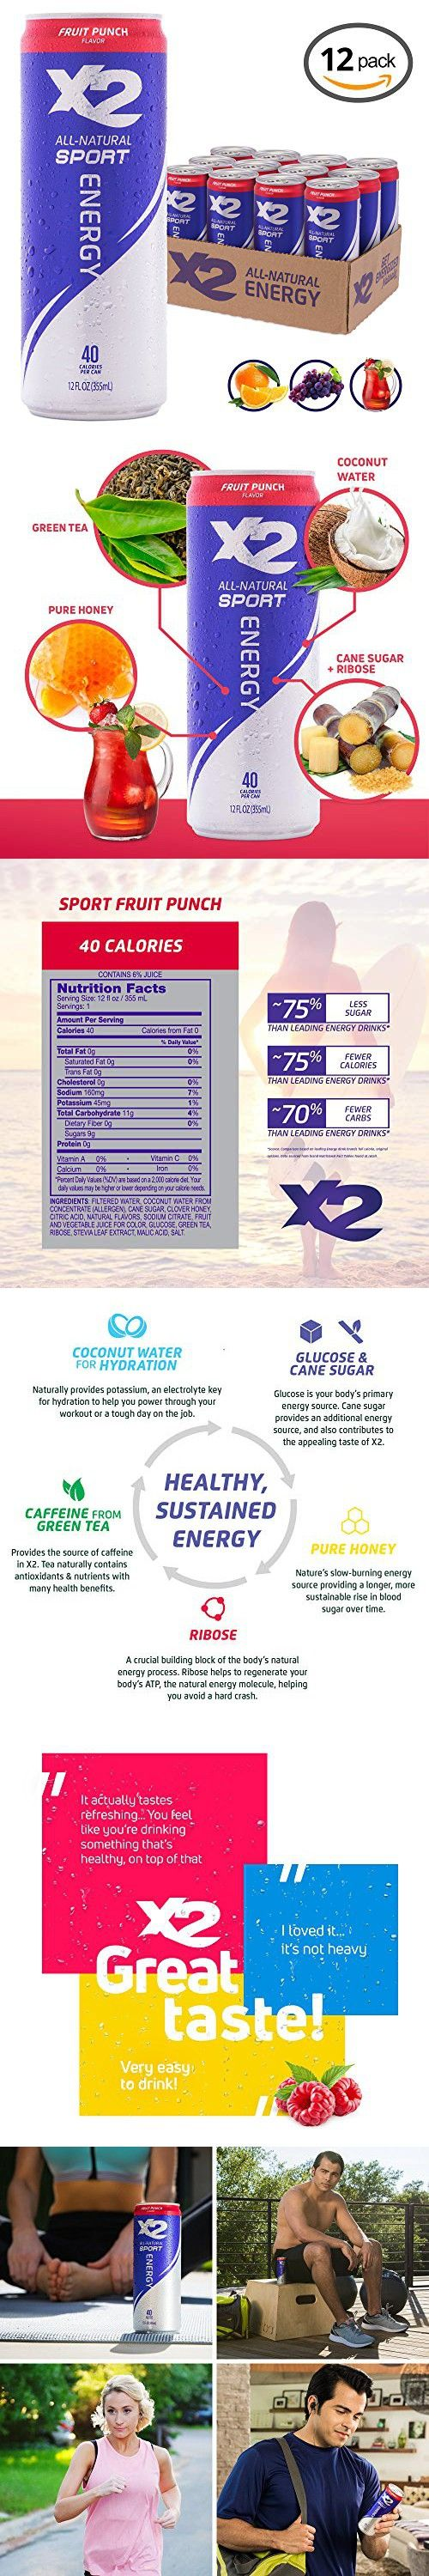 X2 All Natural Sport Hydrating Energy Drink Great Tasting